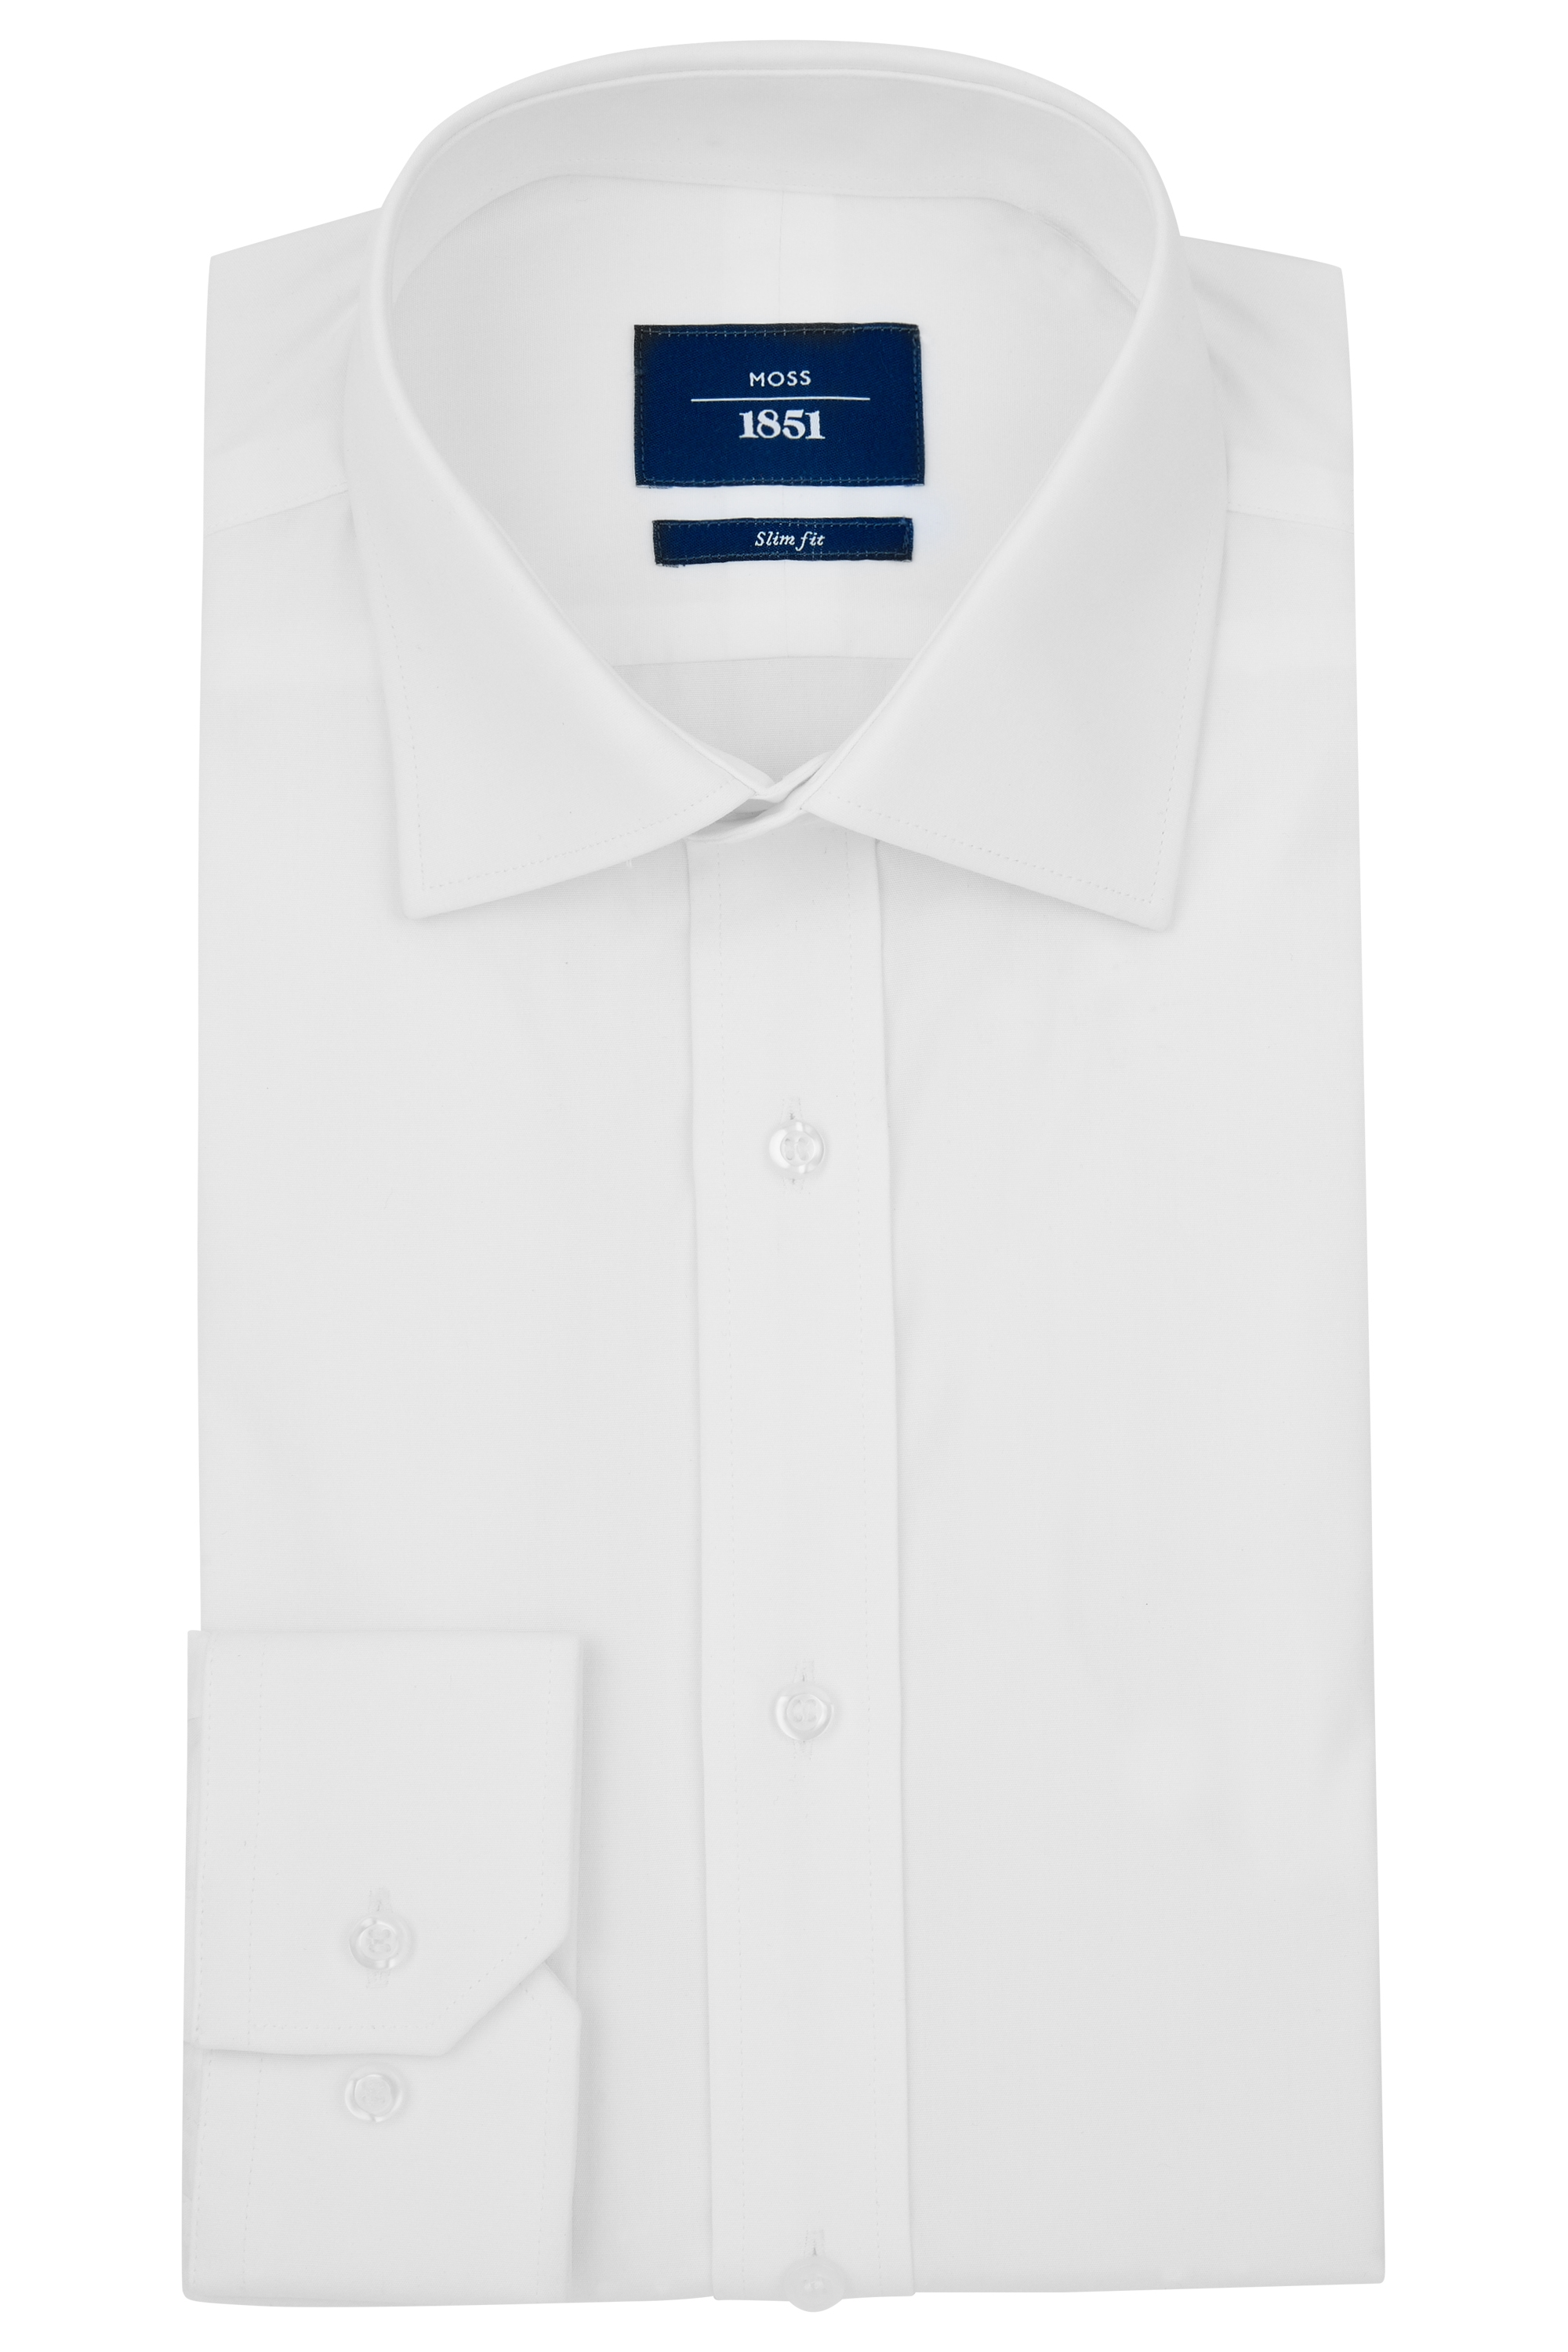 Find great deals on eBay for moss bros shirt. Shop with confidence.